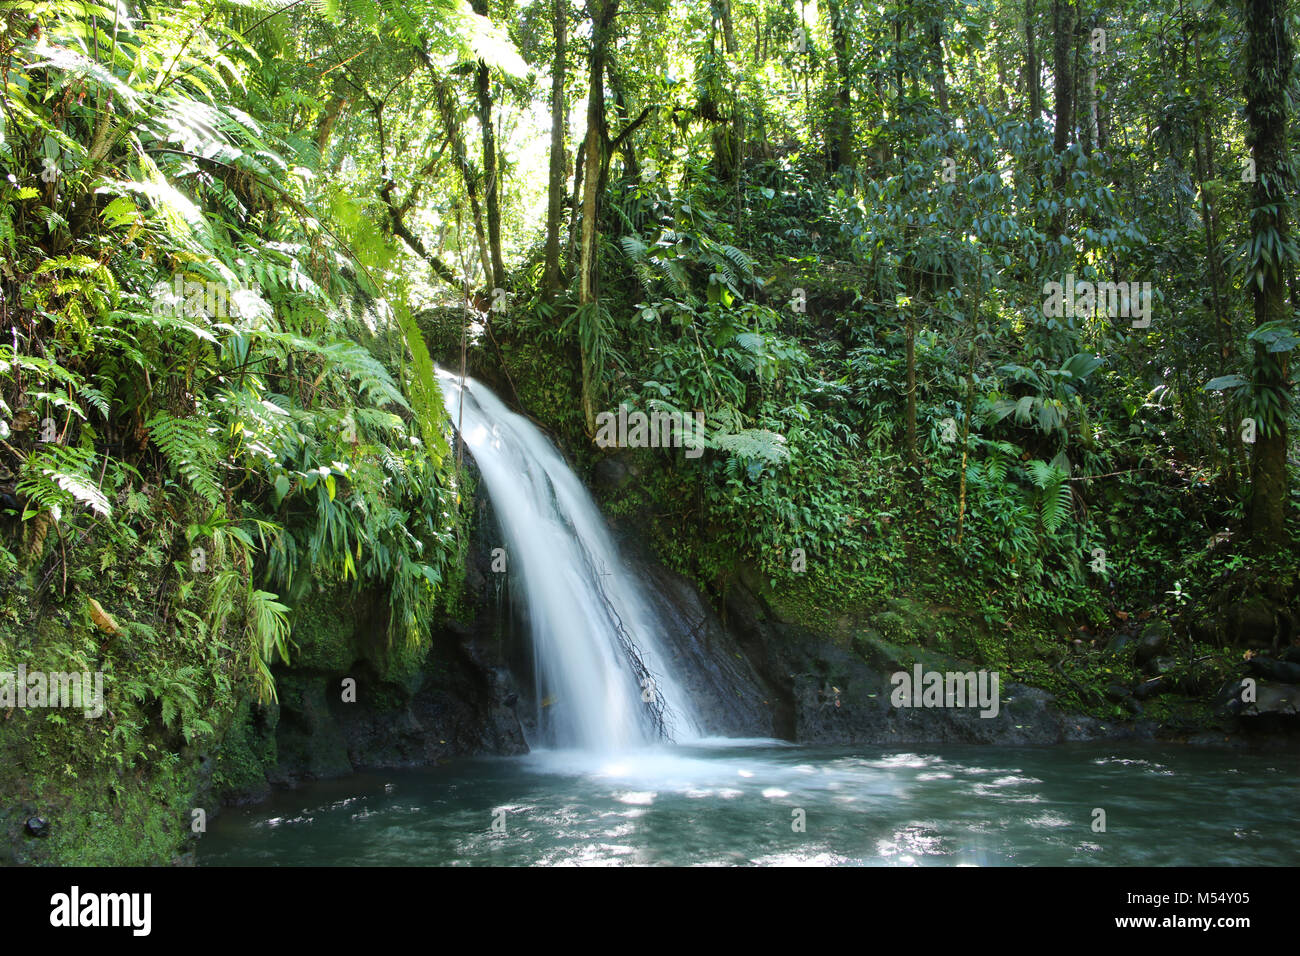 Crayfish Waterfall or La Cascade aux Ecrevisses, Guadeloupe National Park, Guadeloupe, French West Indies. - Stock Image